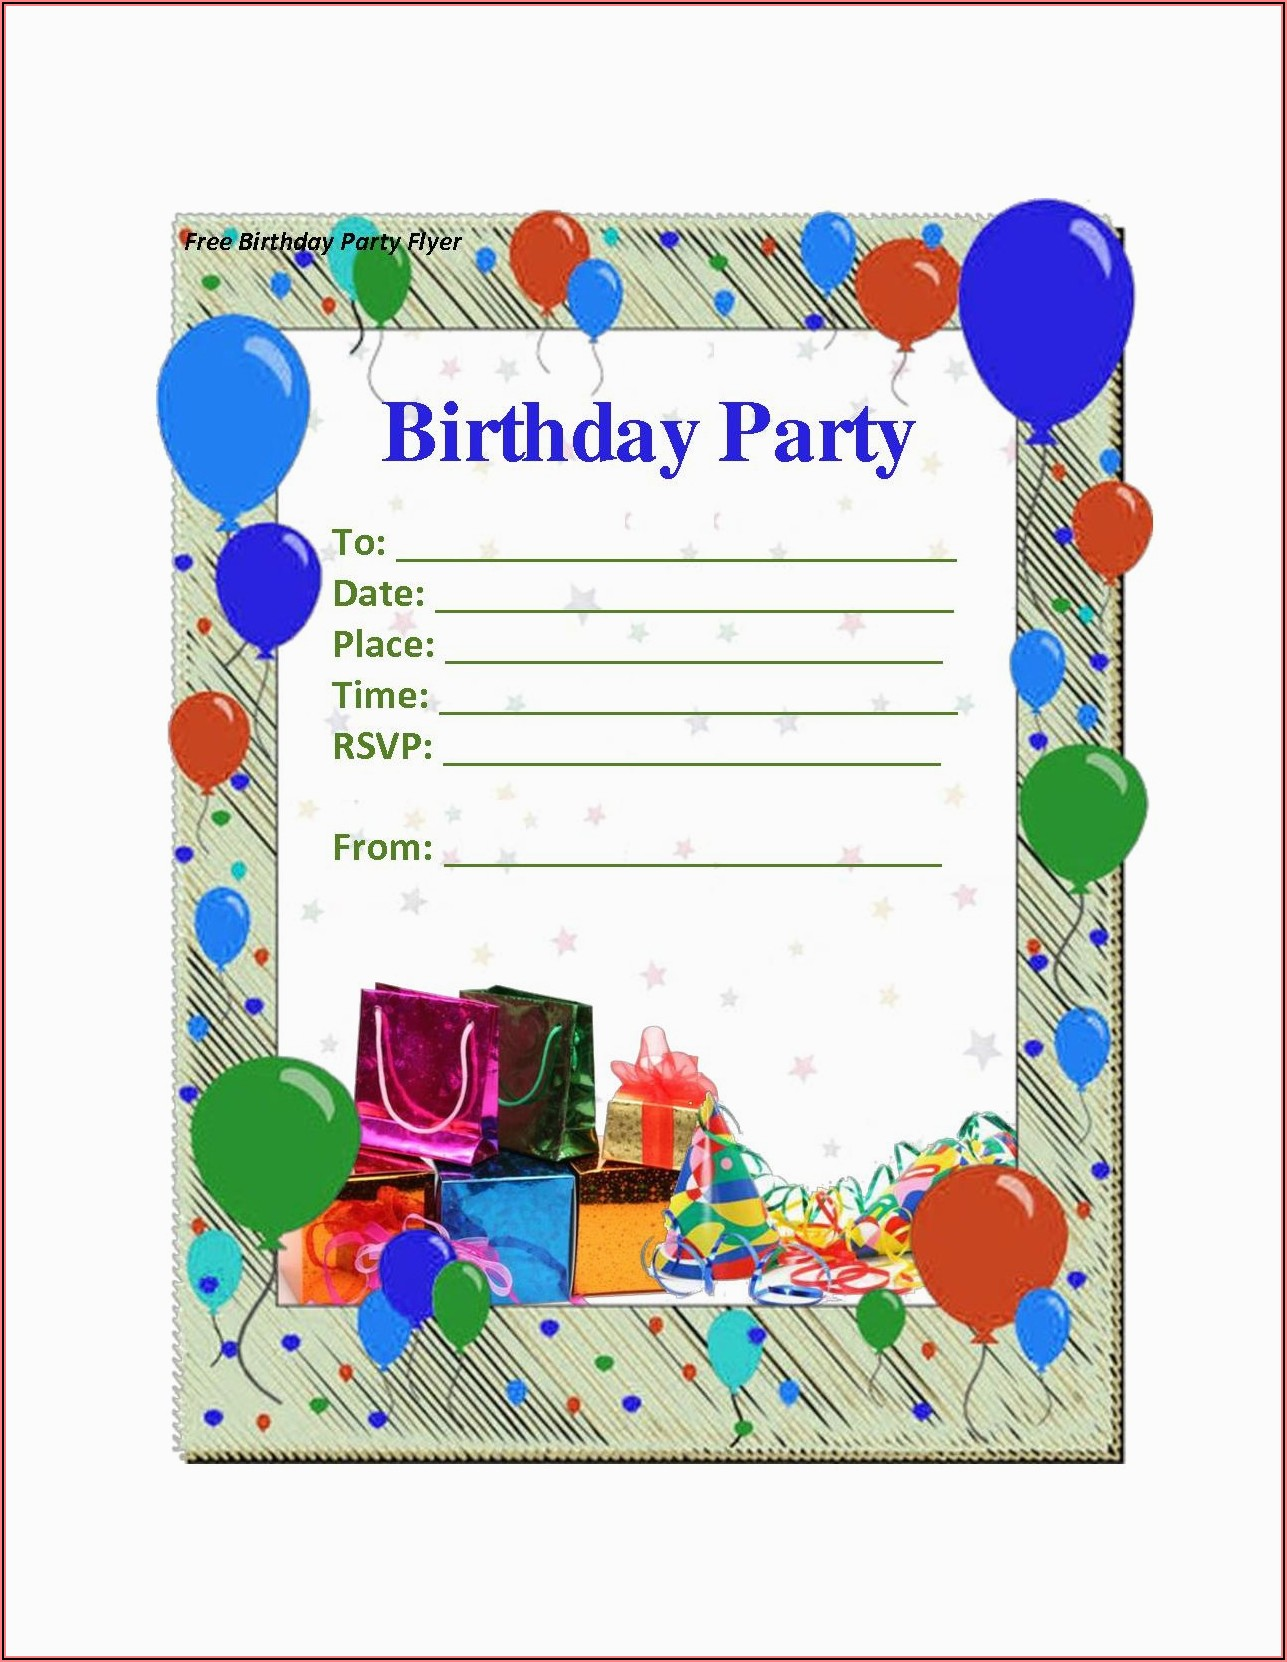 Creating Birthday Invitations Free Online